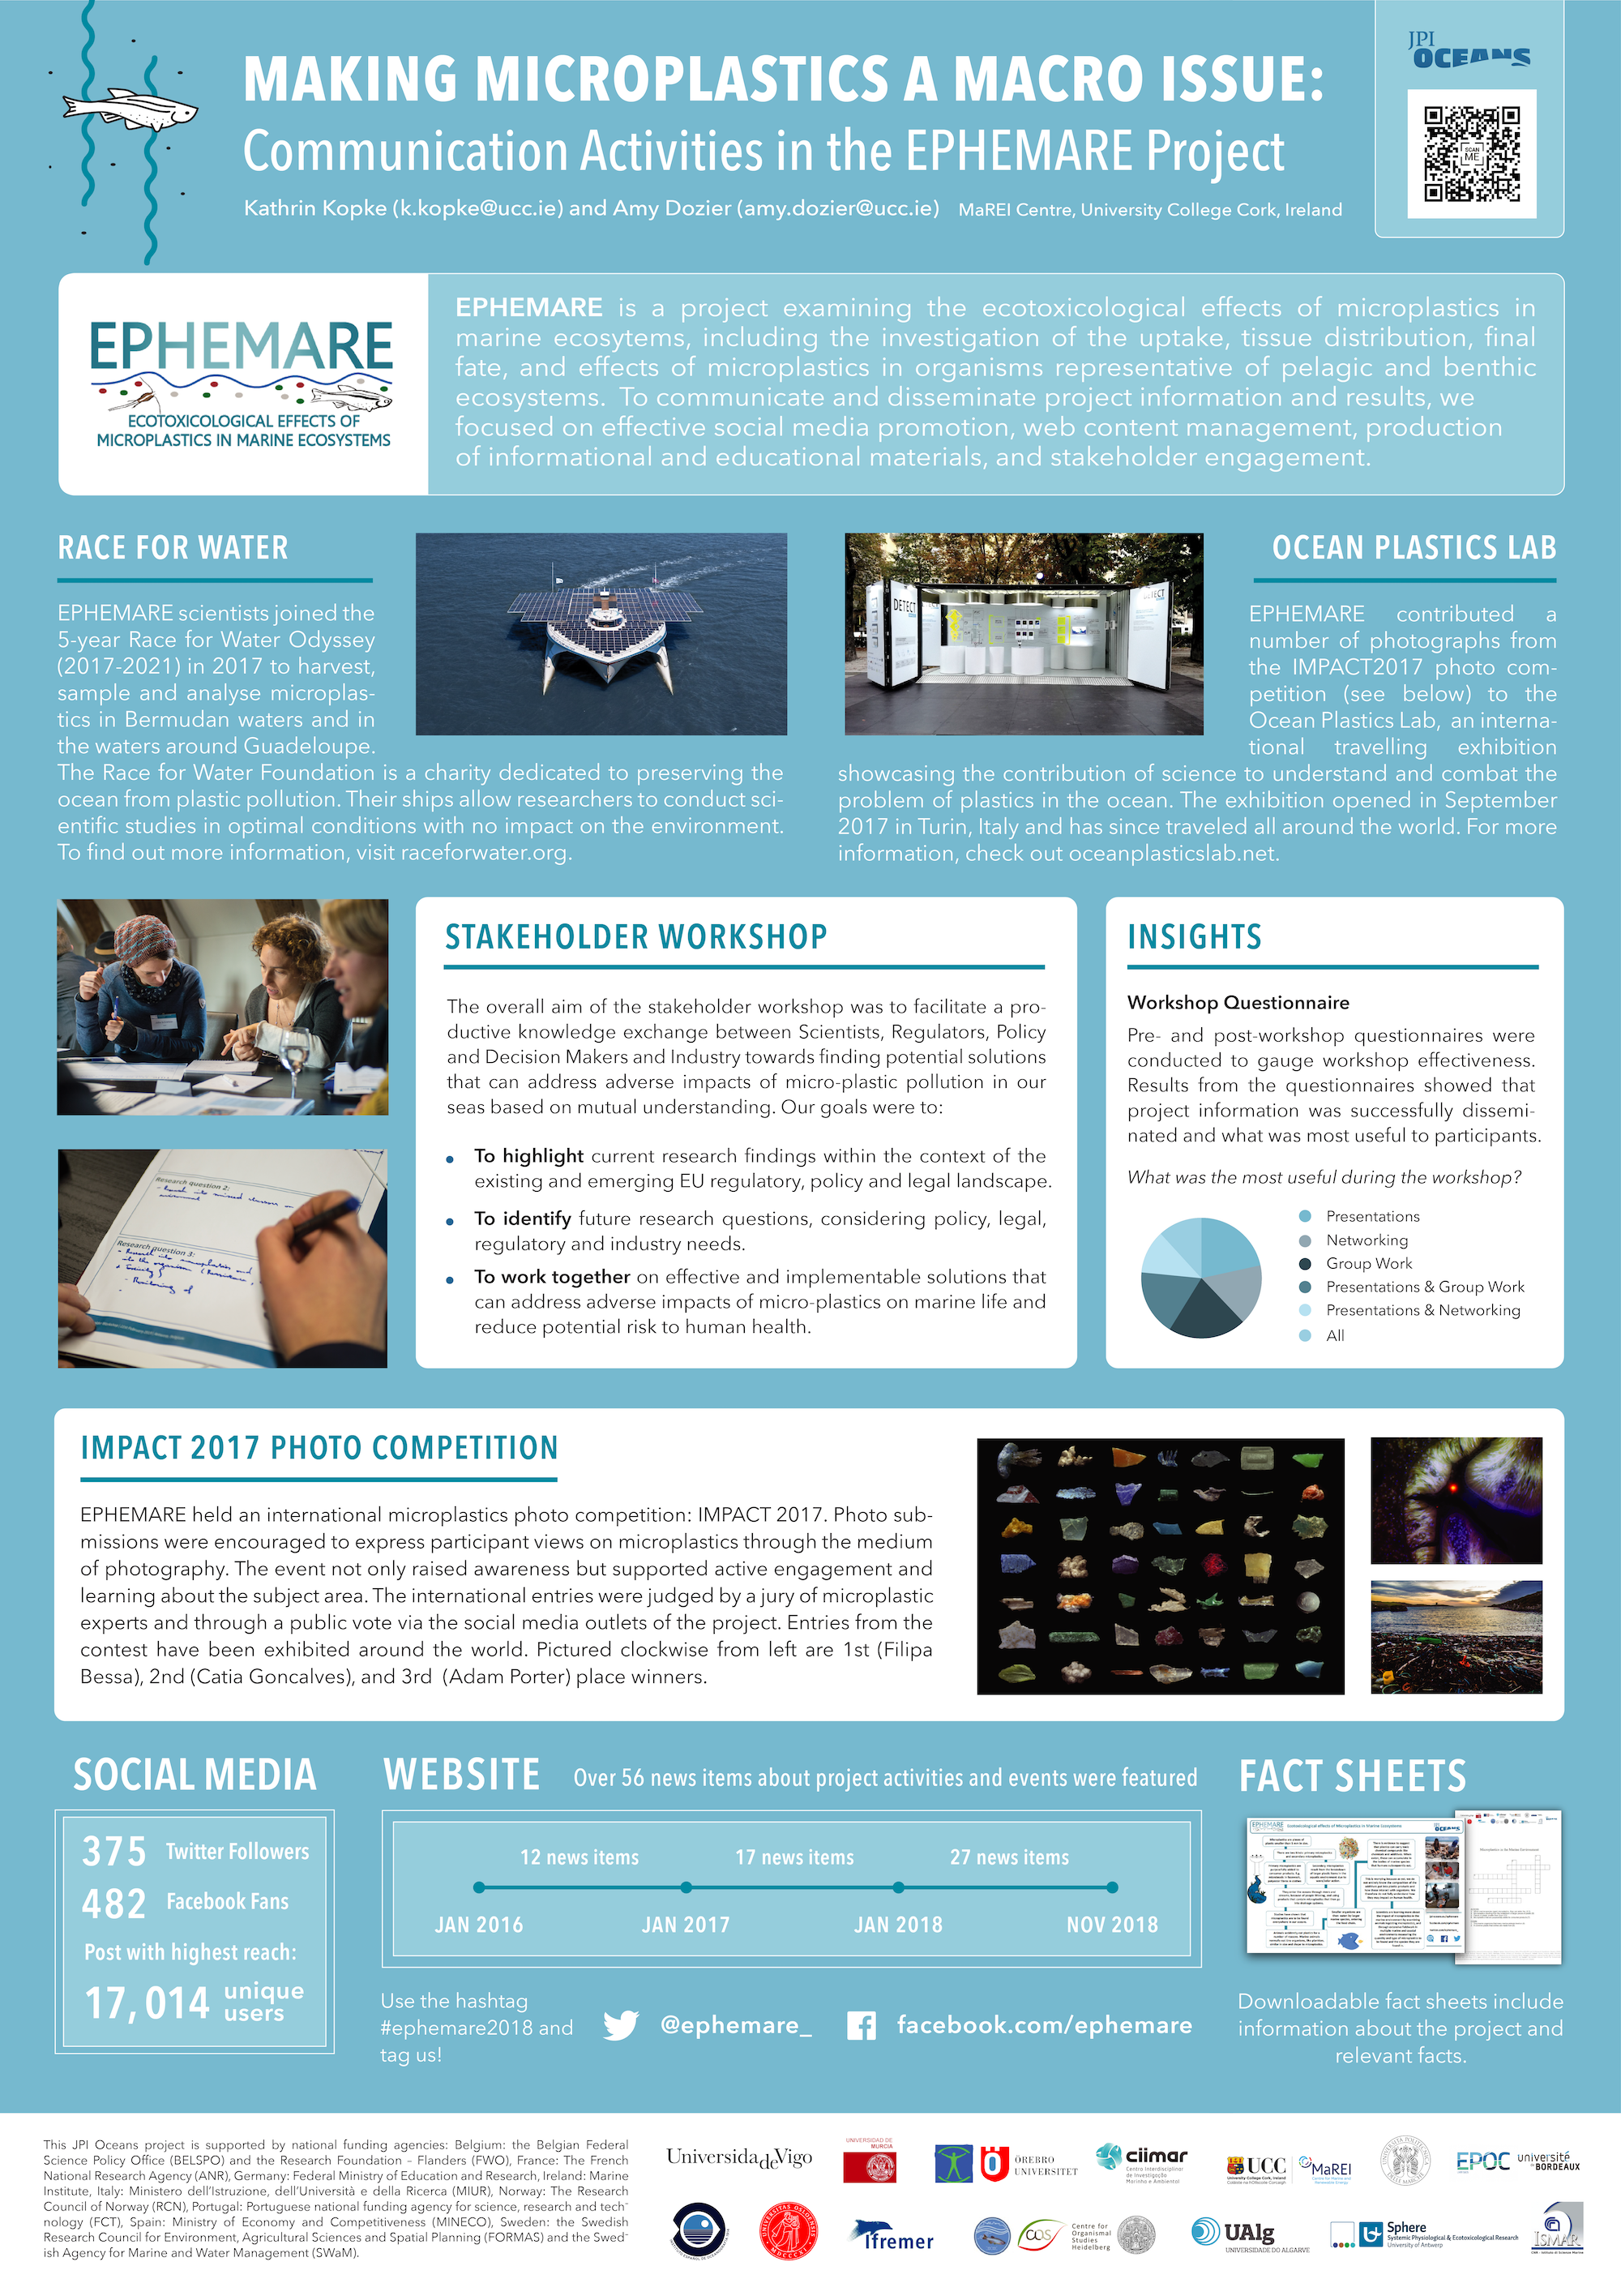 Ephemare Posterfor MICRO2018 - Poster for EPHEMARE, a JPI Oceans-funded research project exploring the ecotoxicological effects of microplastics in the marine environment. The poster was displayed at the MICRO2018 conference in Lanzarote, Canary Islands.